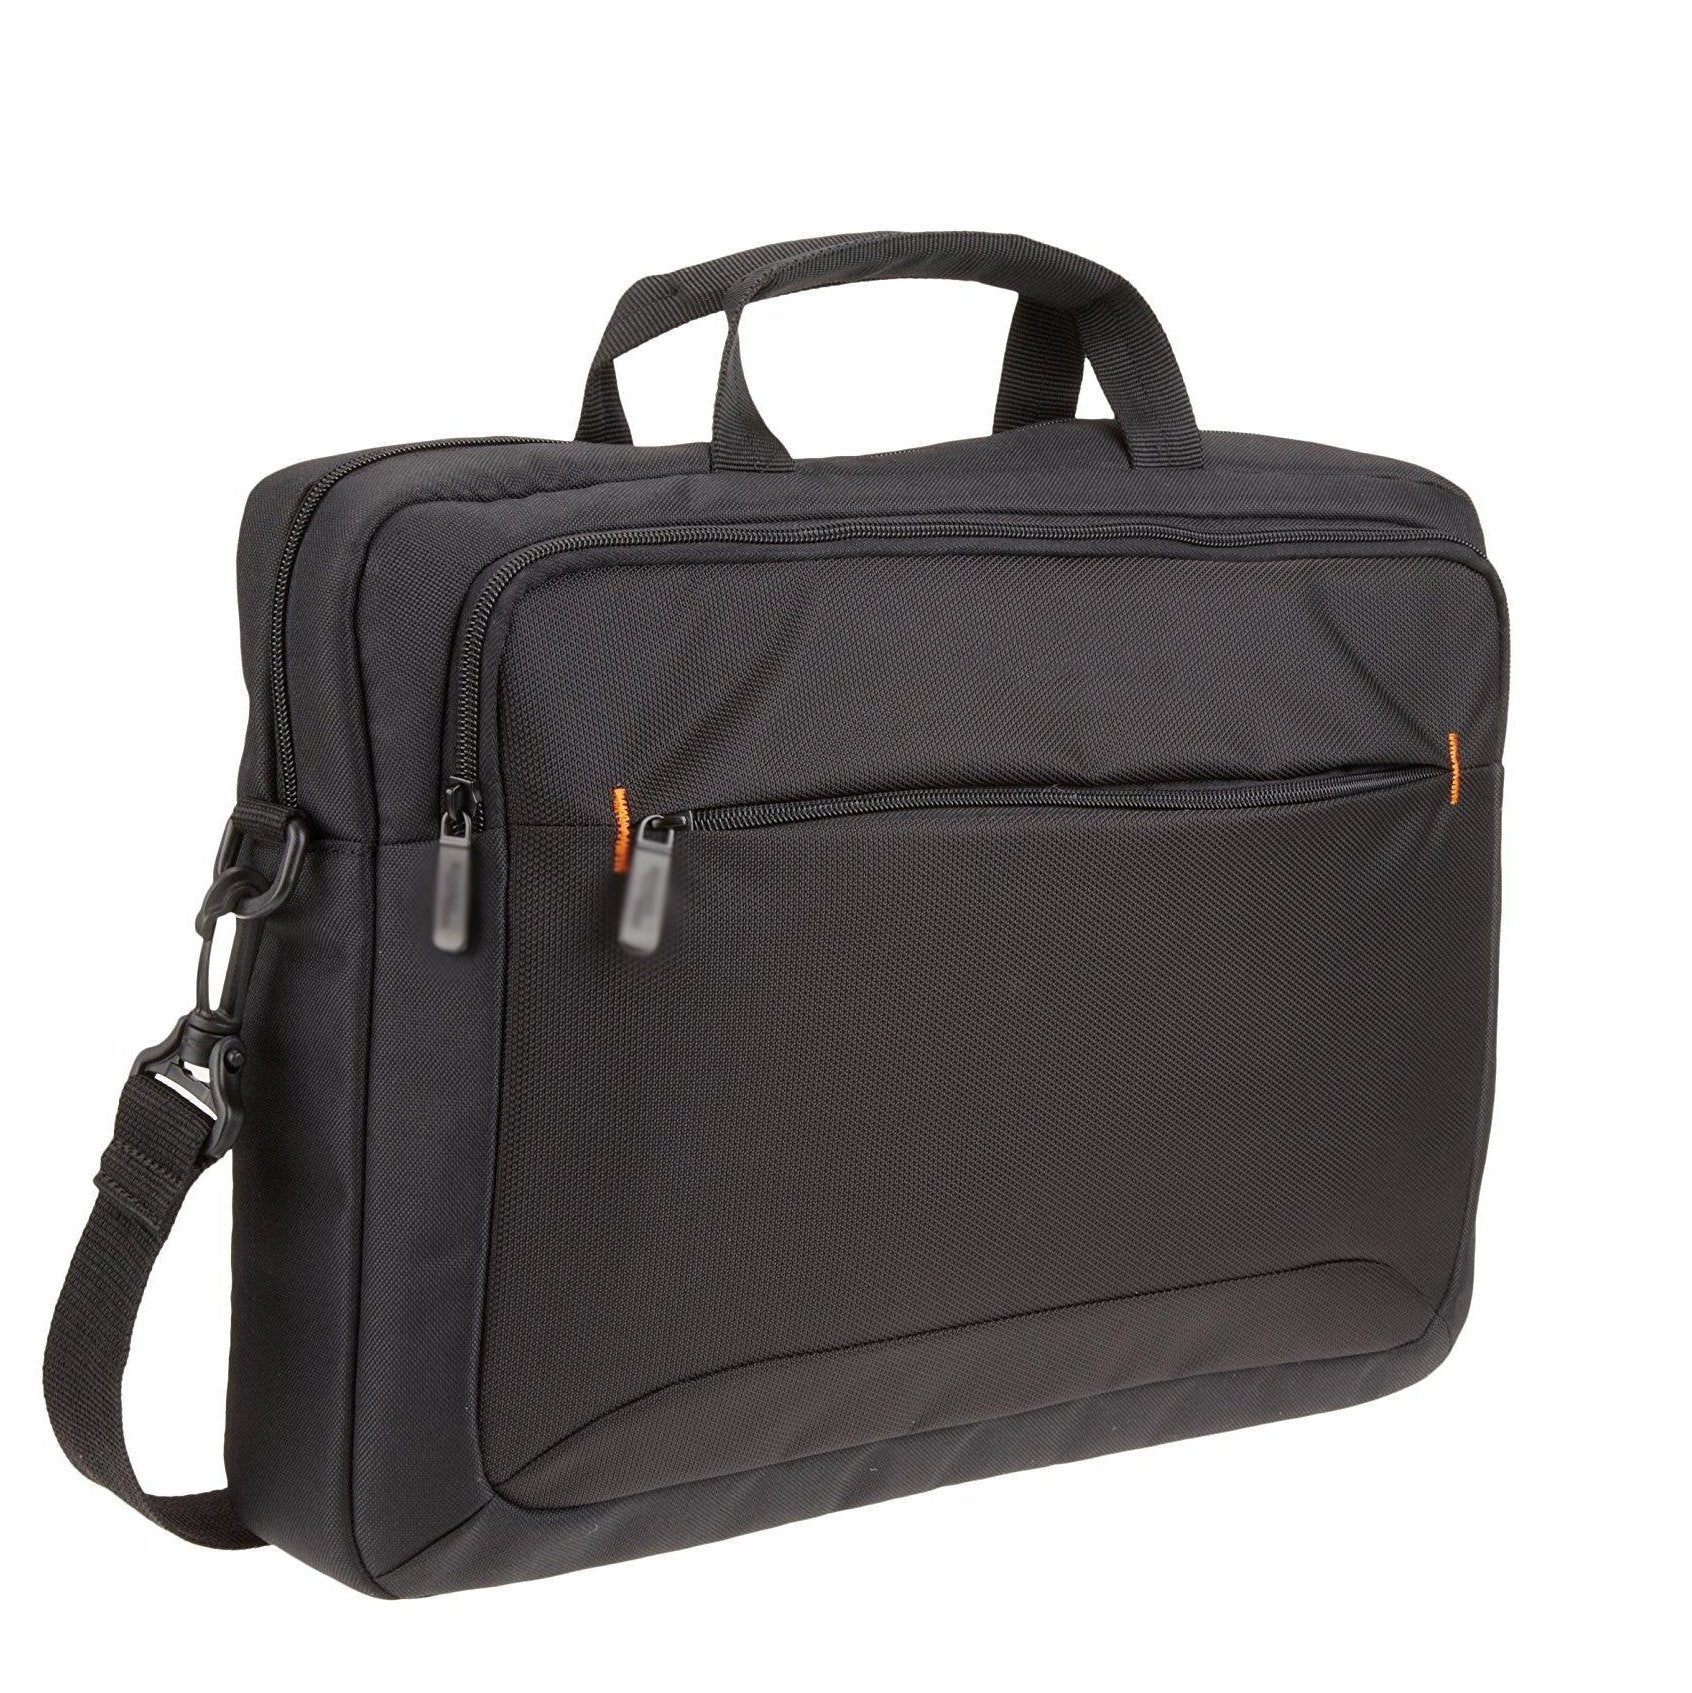 15.6-Inch Laptop and Tablet Bag,10-Pack